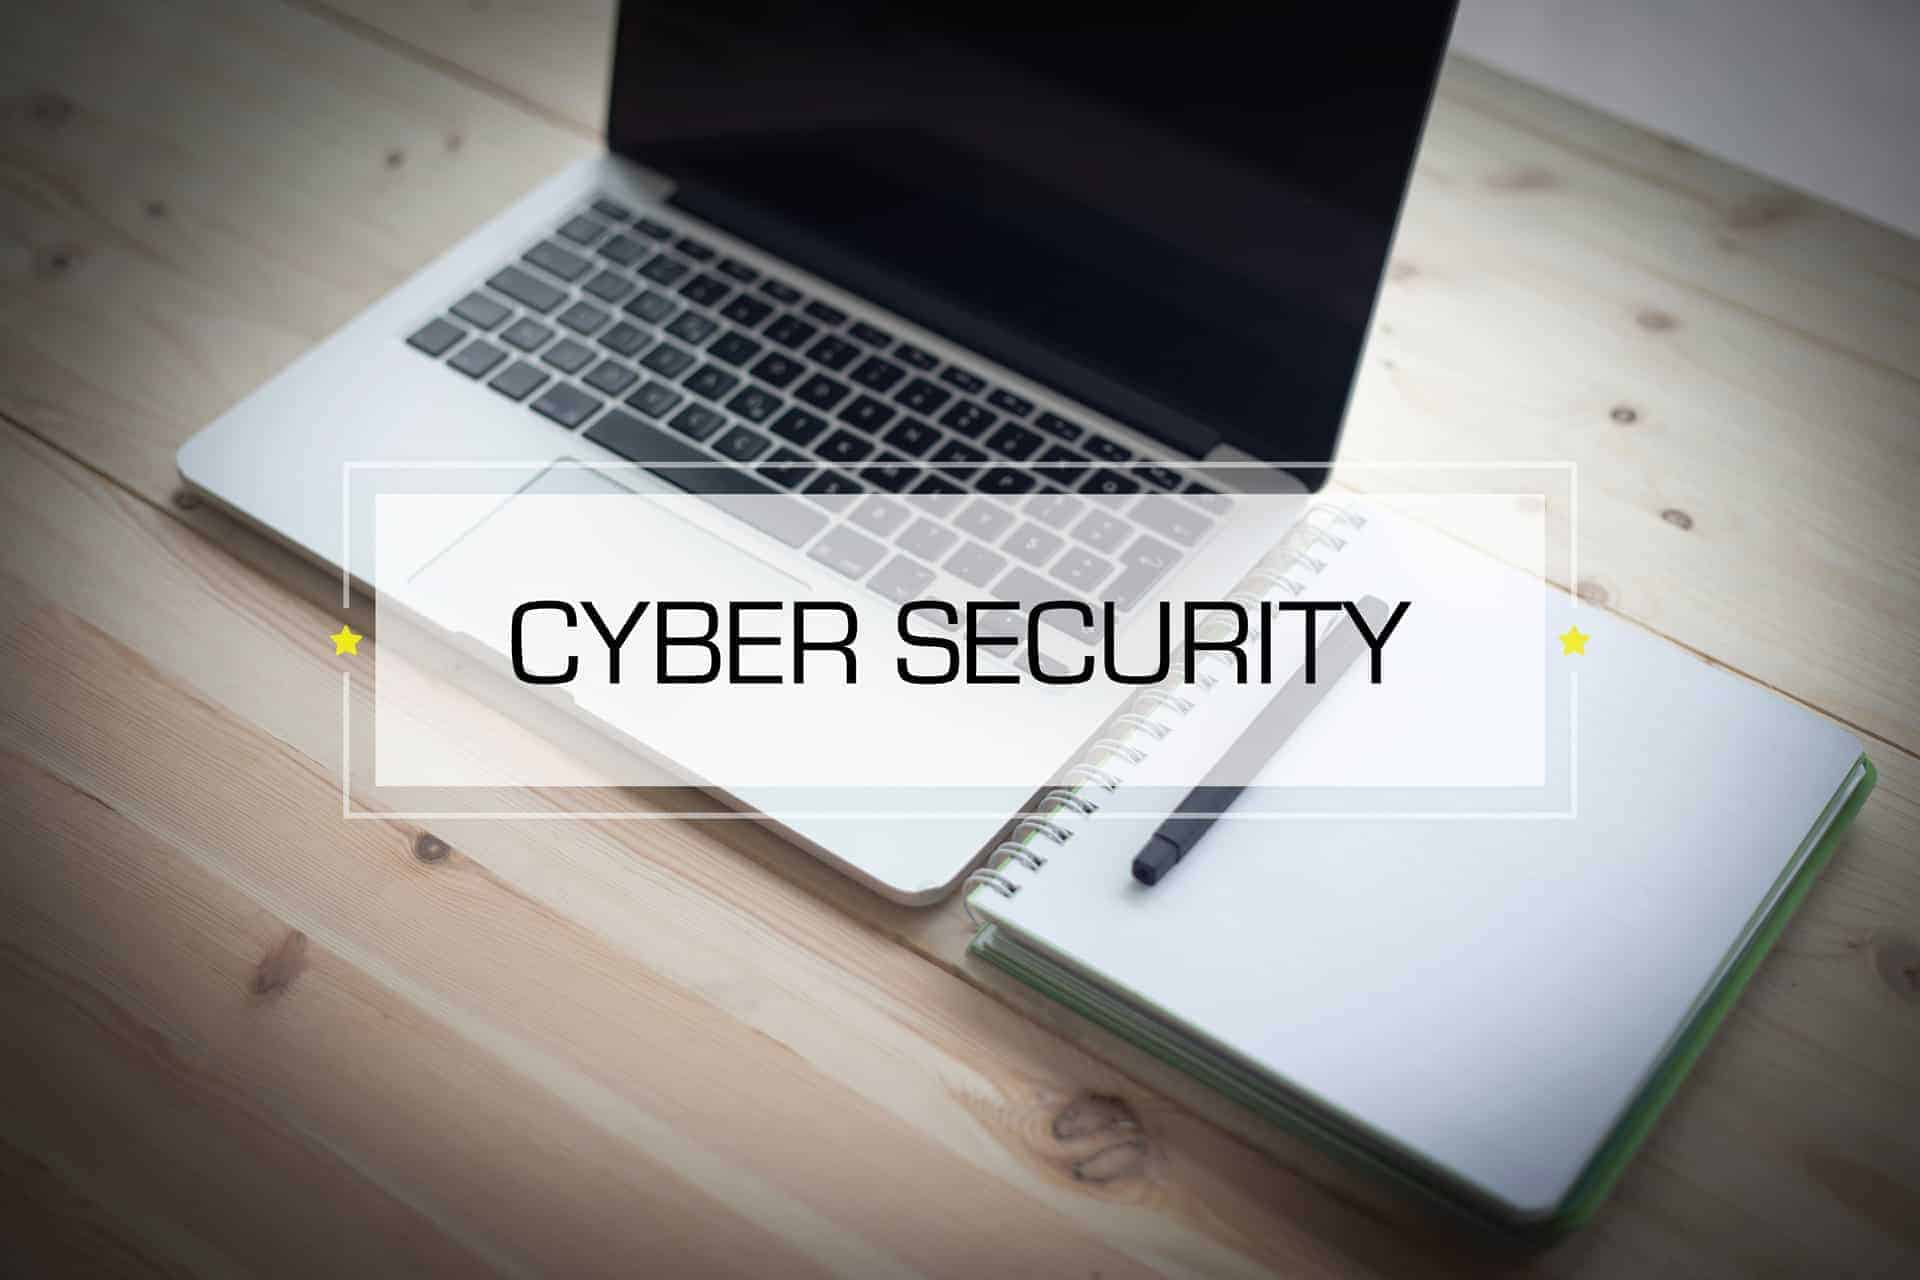 The NIST Cybersecurity Framework: An Introduction to the 5 Functions